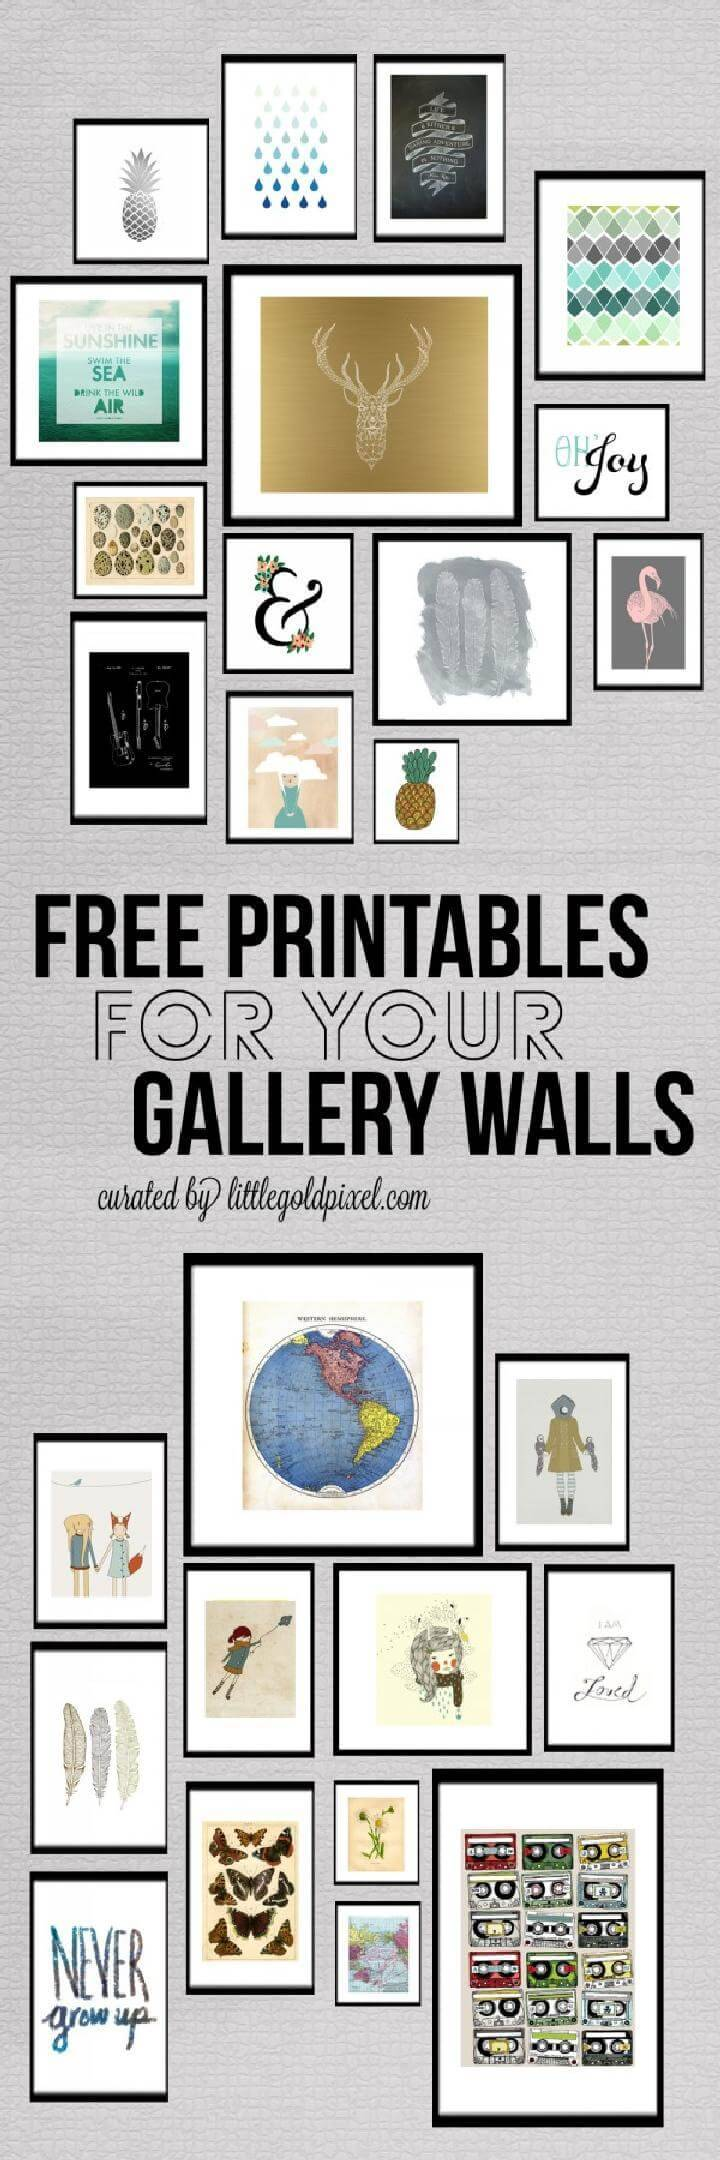 Free Gallery Wall Printables